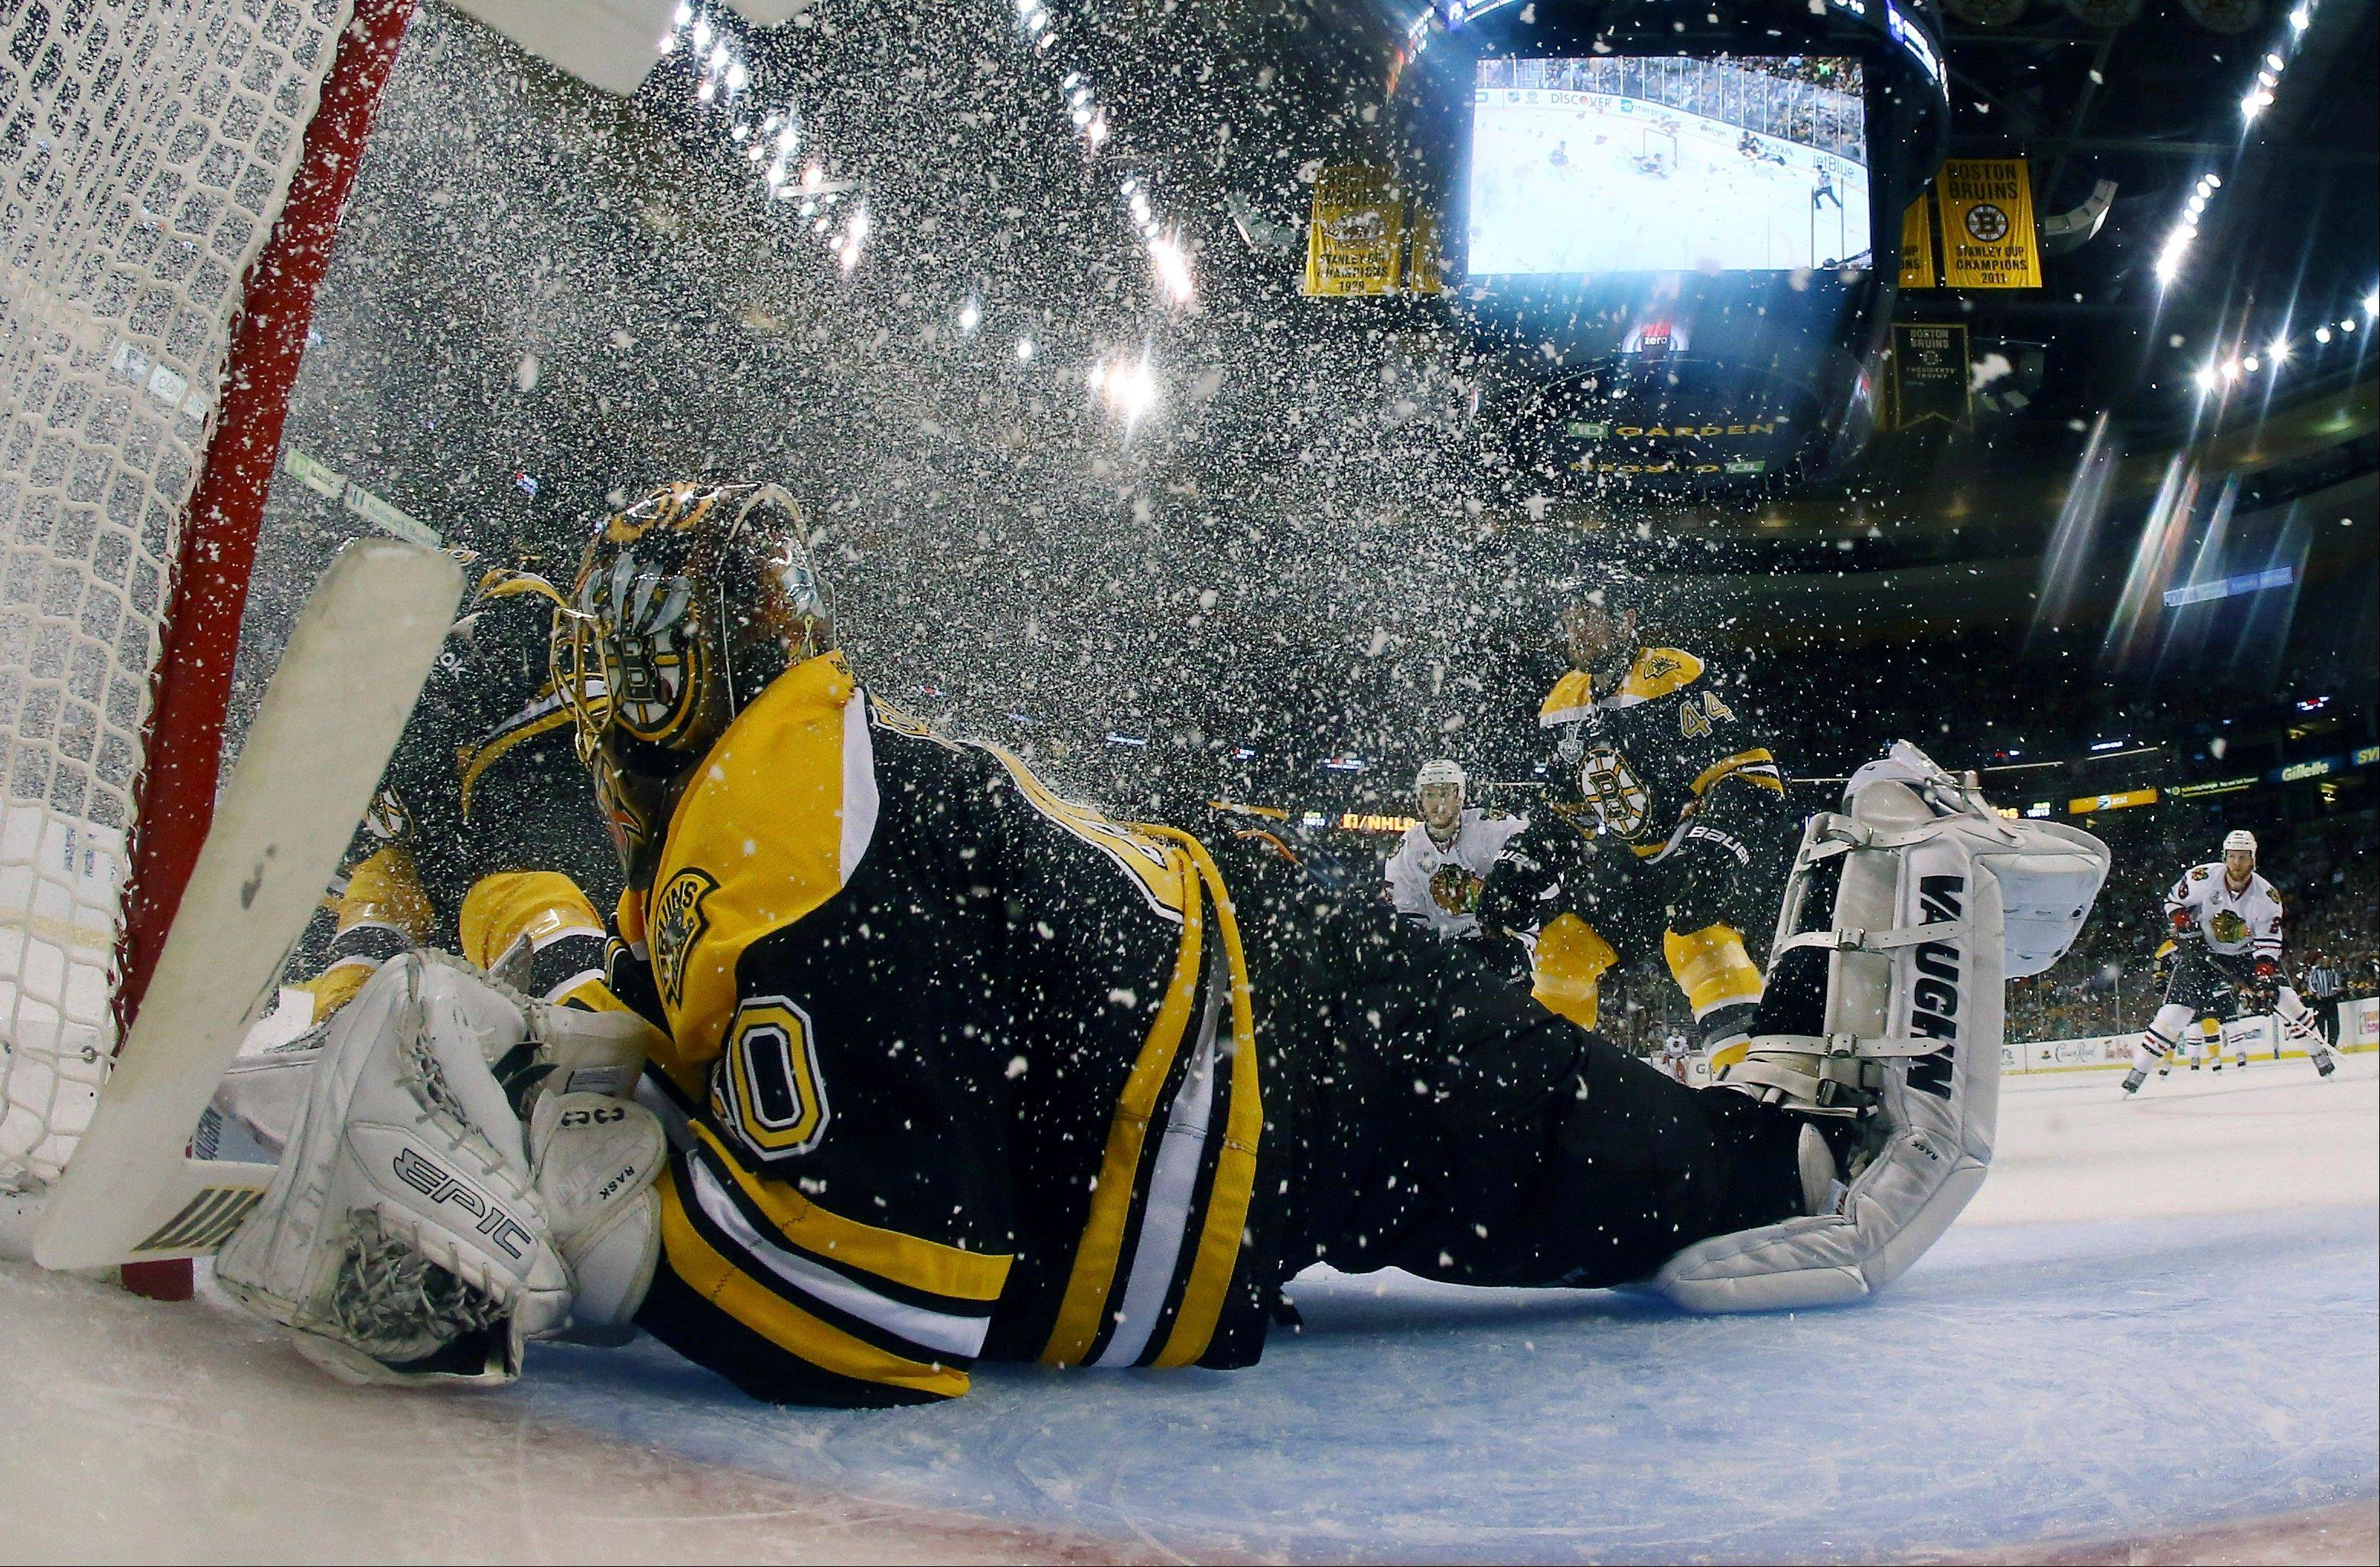 Boston Bruins goalie Tuukka Rask (40), of Finland, defends the net as ice crystals swirl around him during the second period in Game 3 of the NHL hockey Stanley Cup Finals against the Chicago Blackhawks.